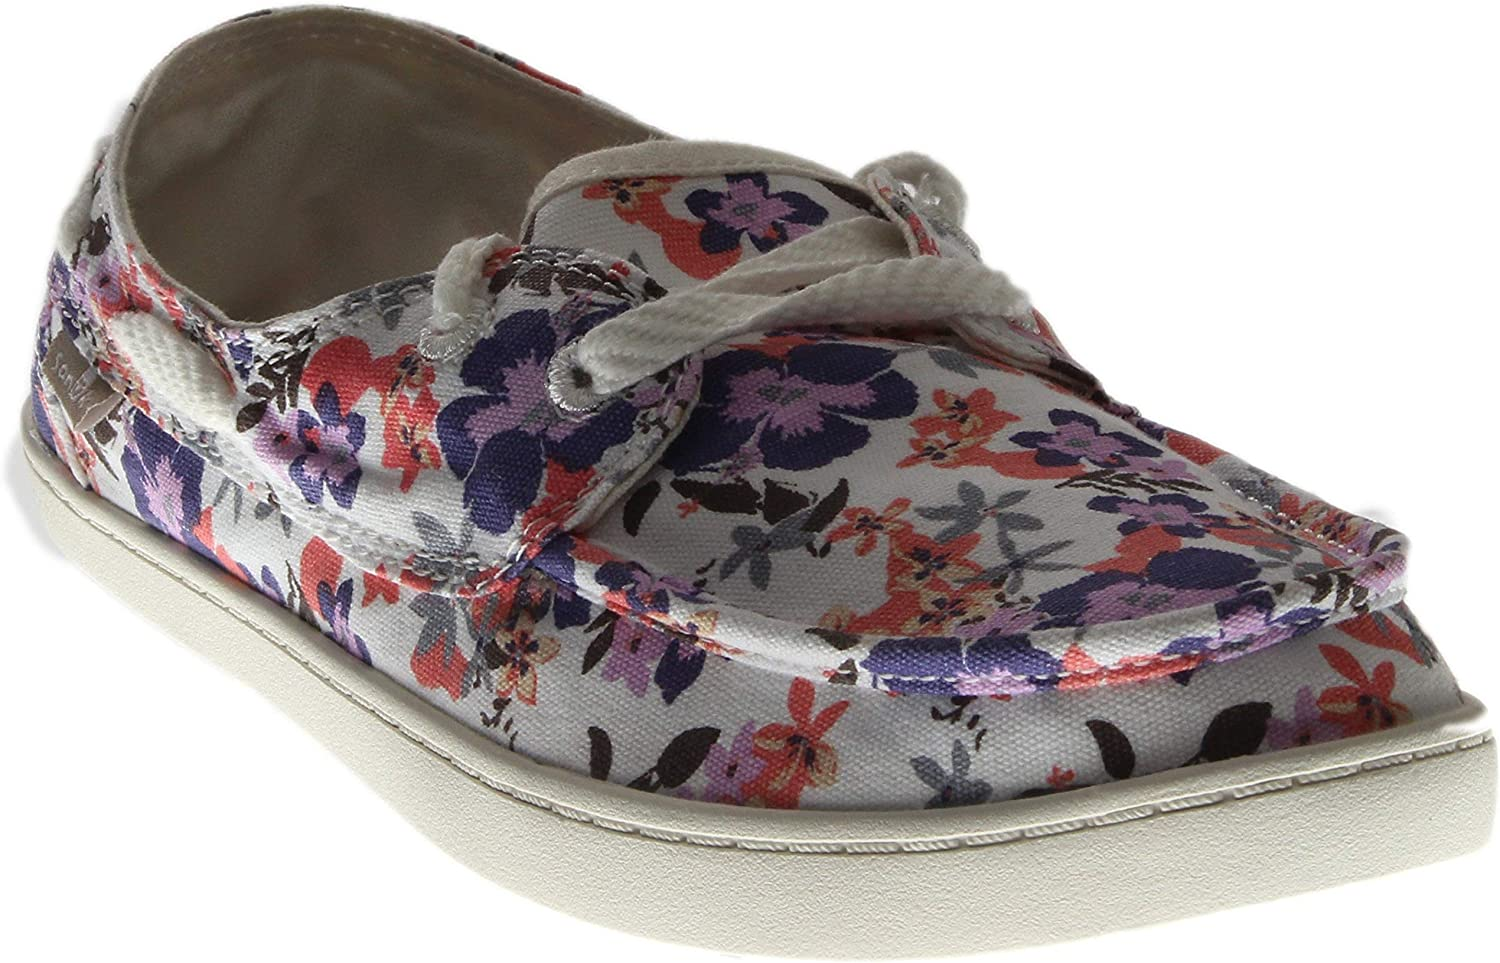 Sanuk Womens Pair O Sail Prints Boat shoes